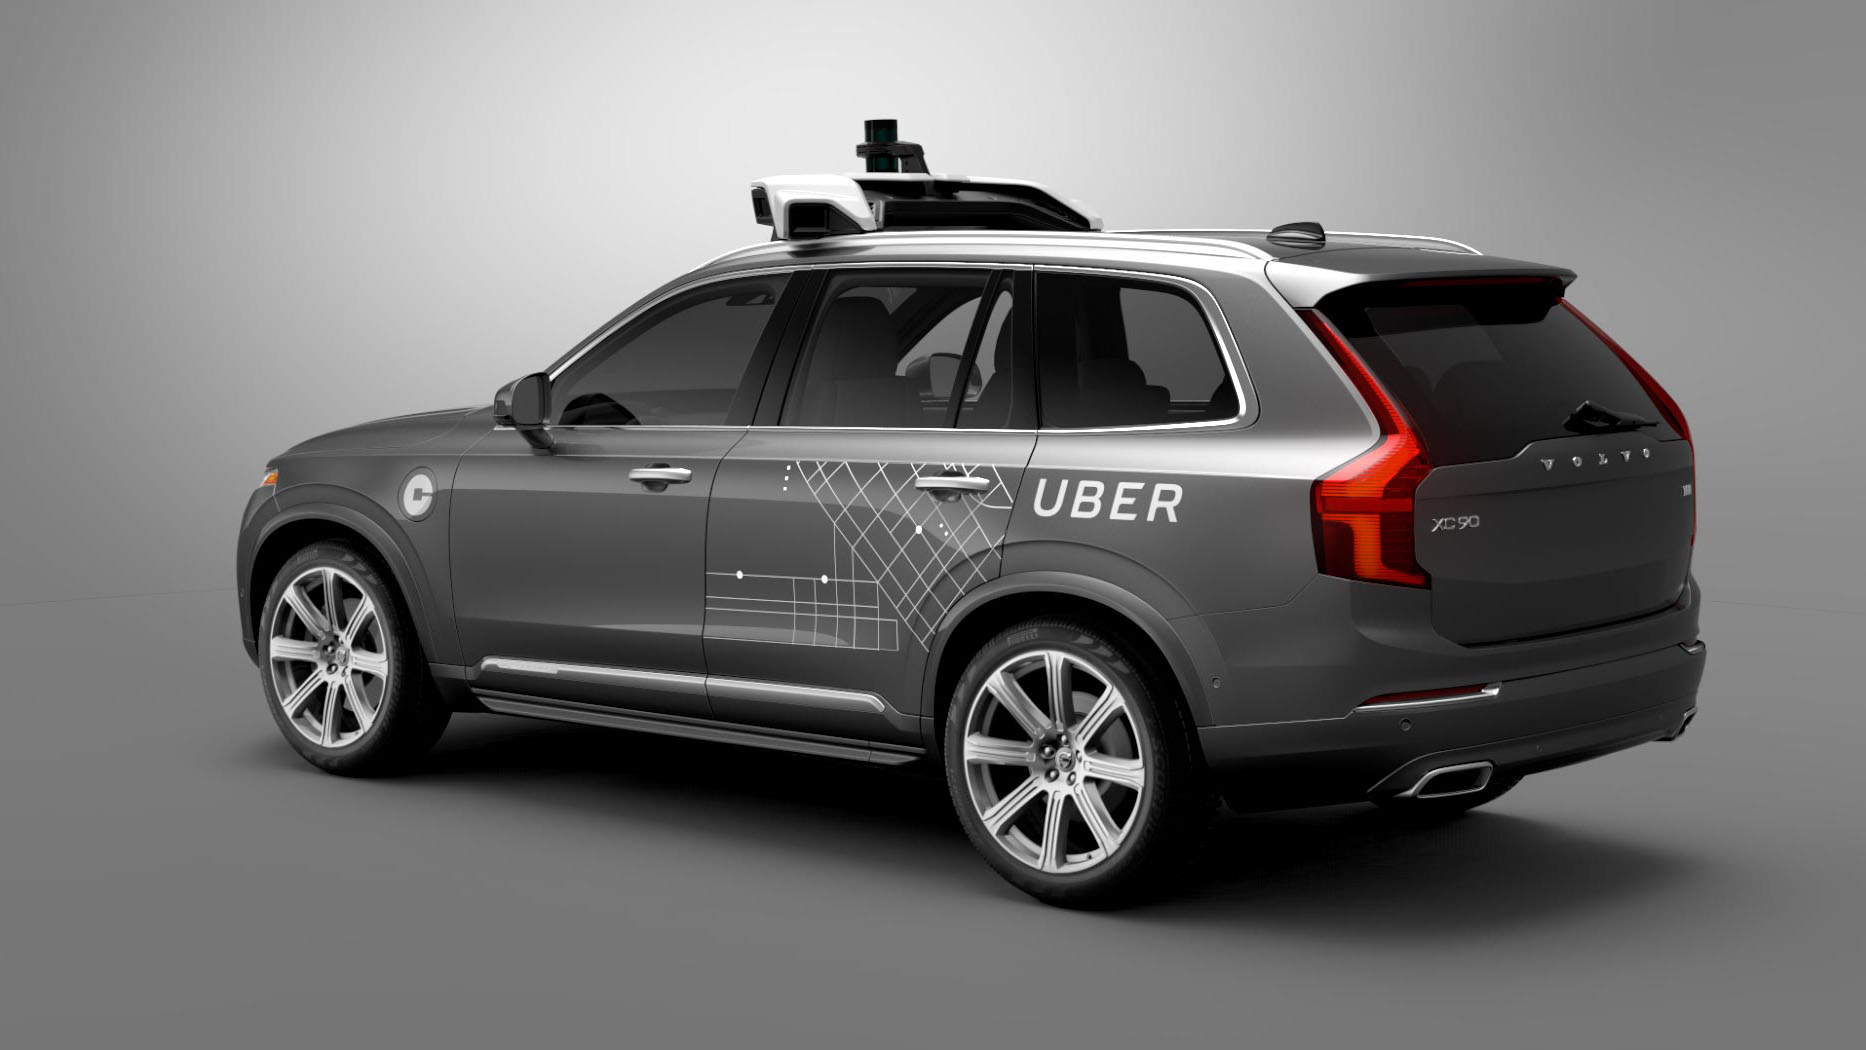 Ubers first self driving fleet arrives in pittsburgh this month ubers first self driving fleet arrives in pittsburgh this month bloomberg biocorpaavc